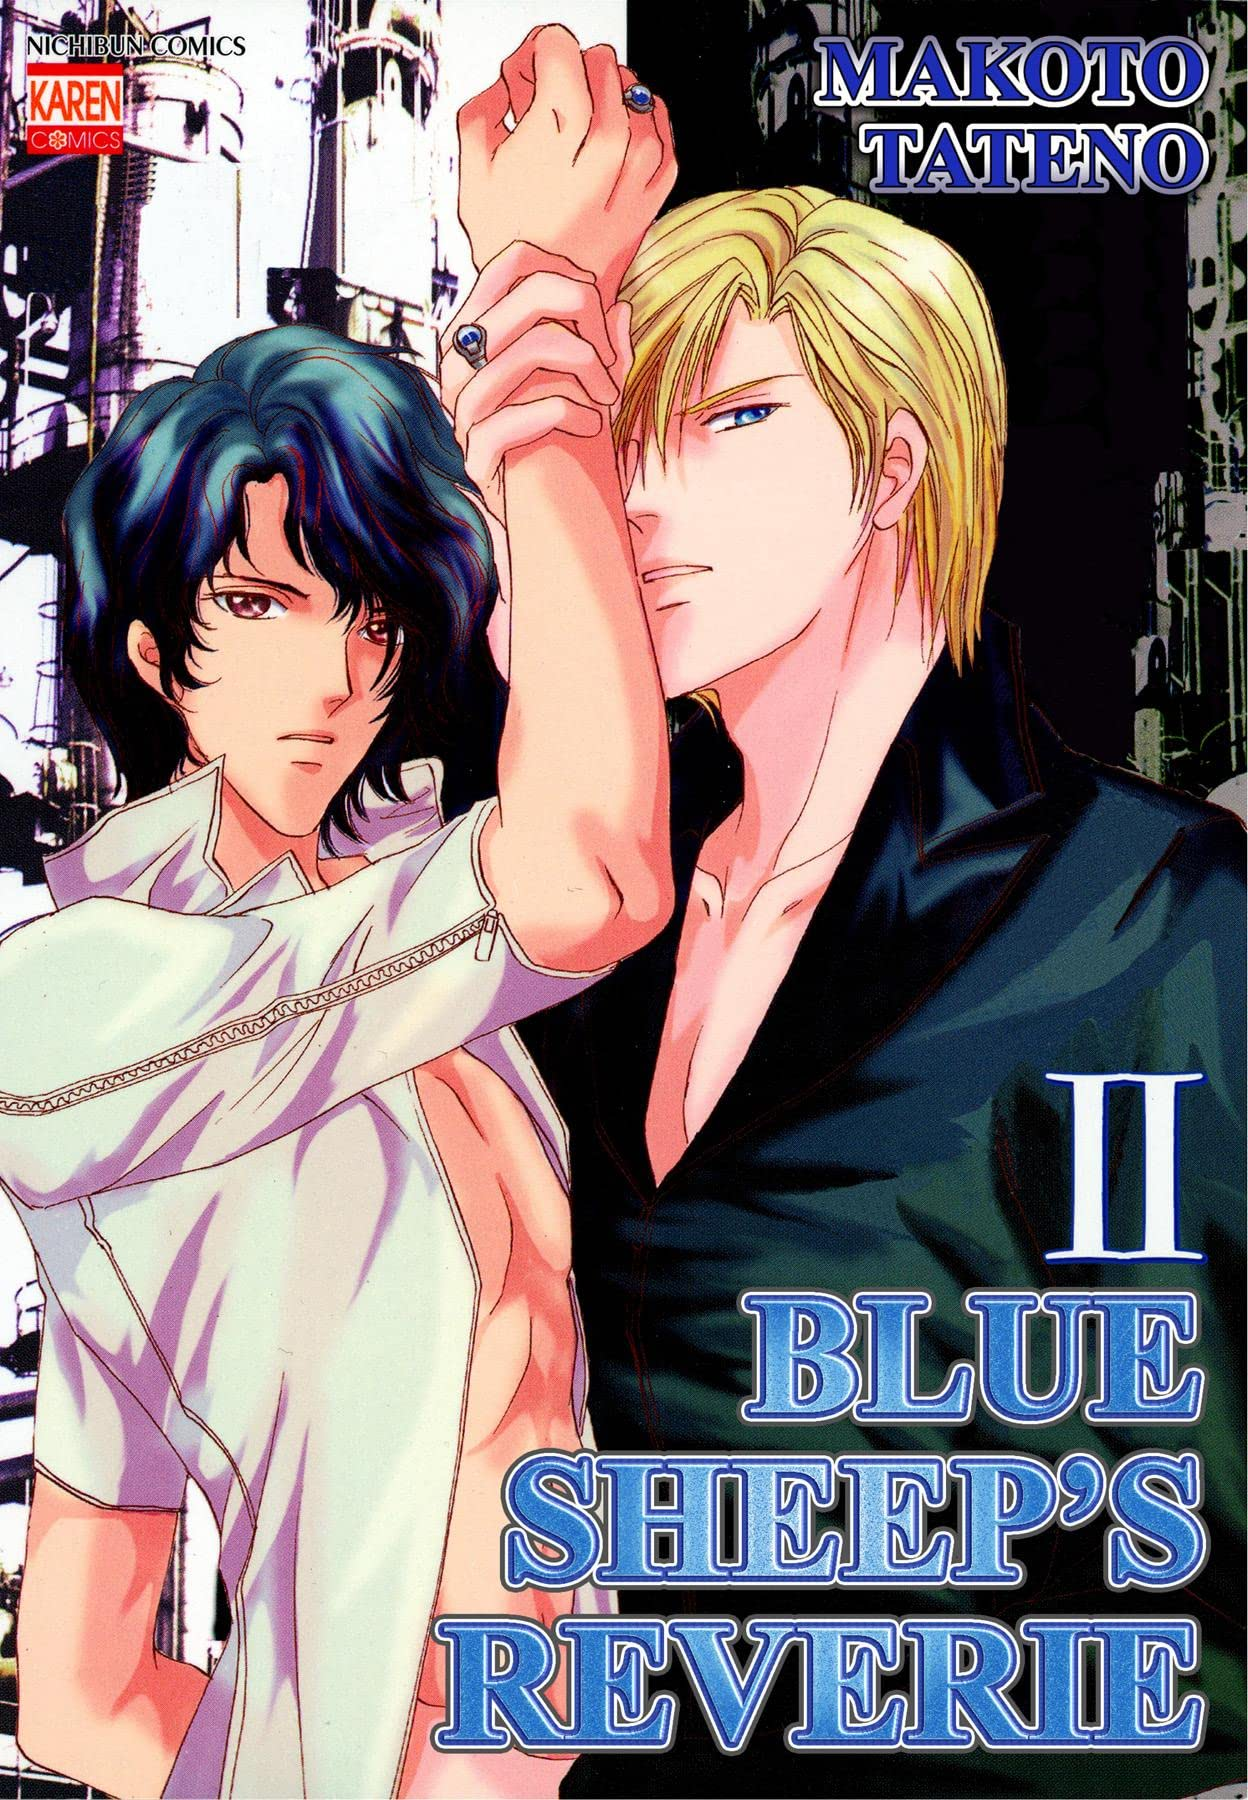 BLUE SHEEP'S REVERIE Vol. 2